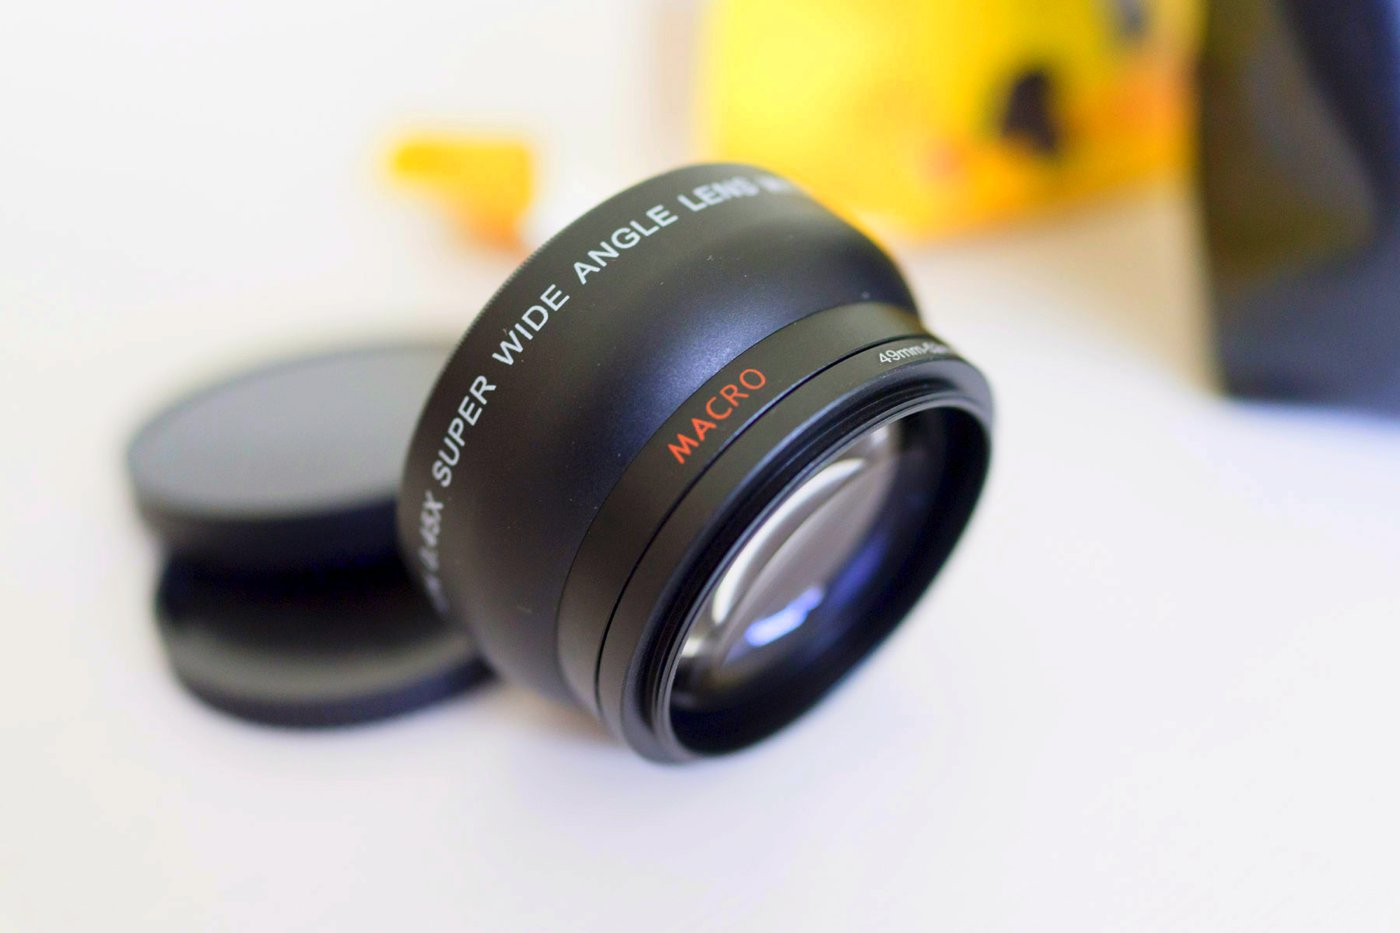 Win These Little Nifty Photography Gadgets To Make Your Photos Pop! (5)